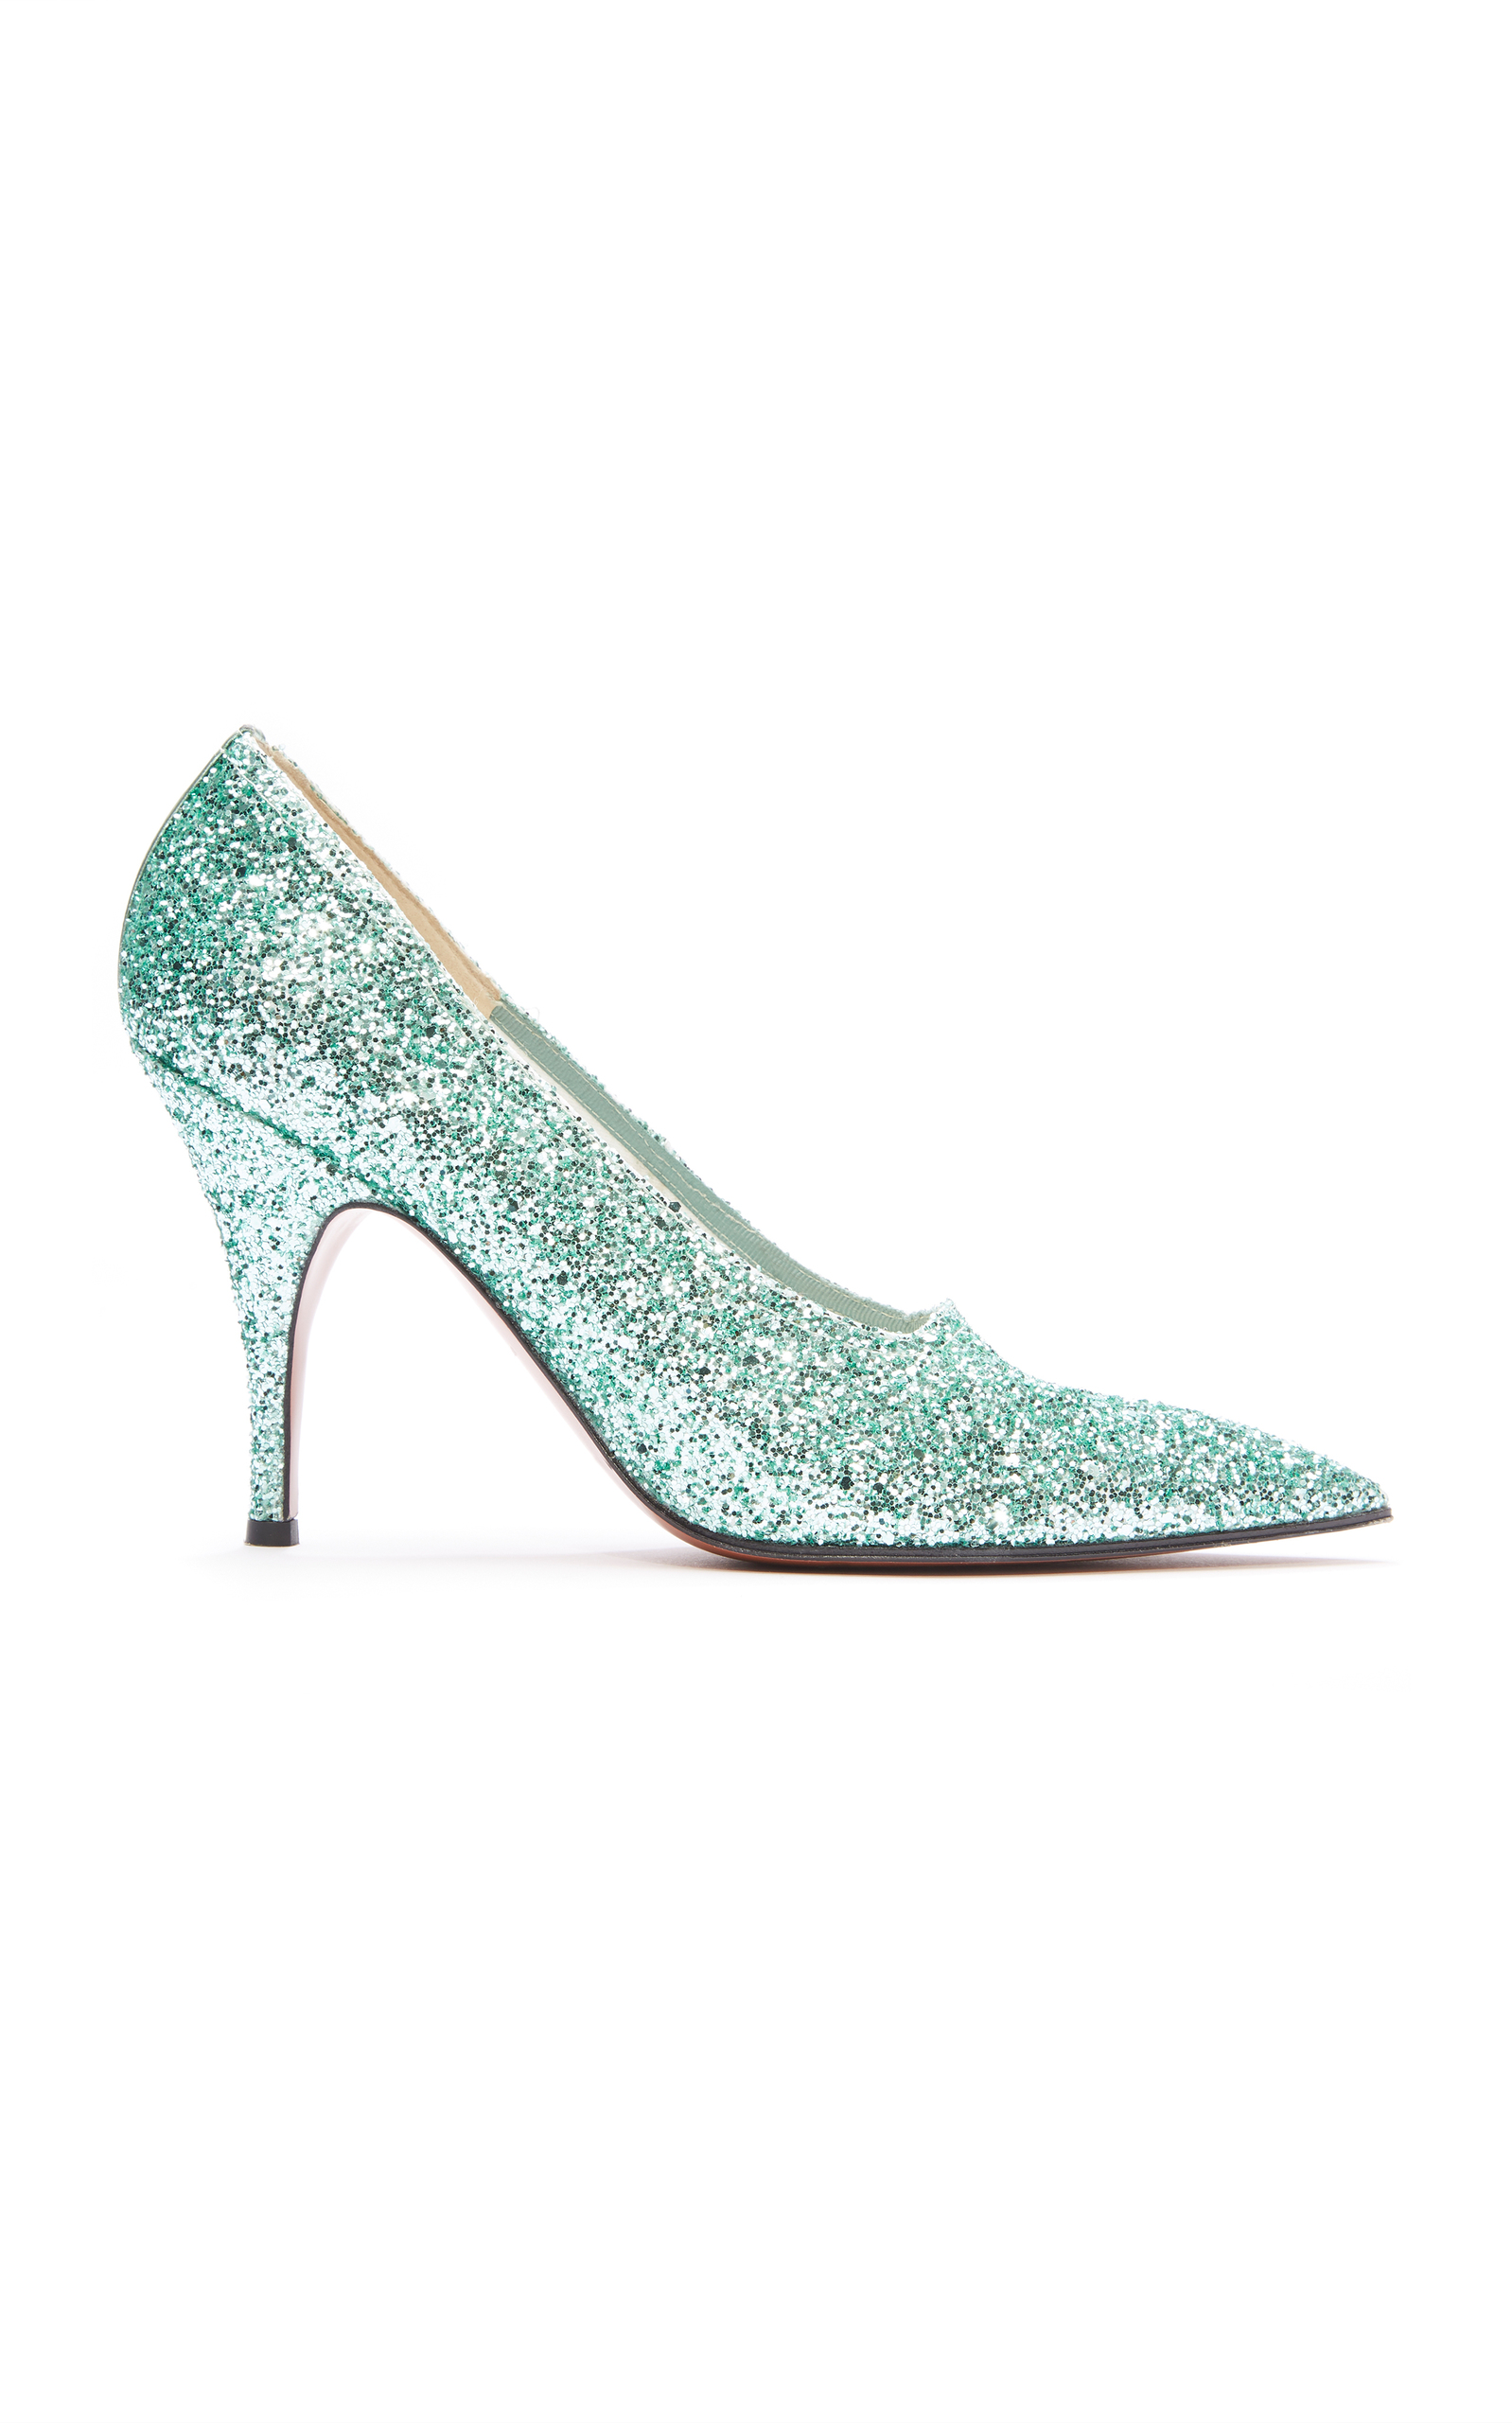 Victoria Beckham Dorothy glitter pumps great deals sale for nice amazing price for sale clearance 2015 new websites online DmVlo0a